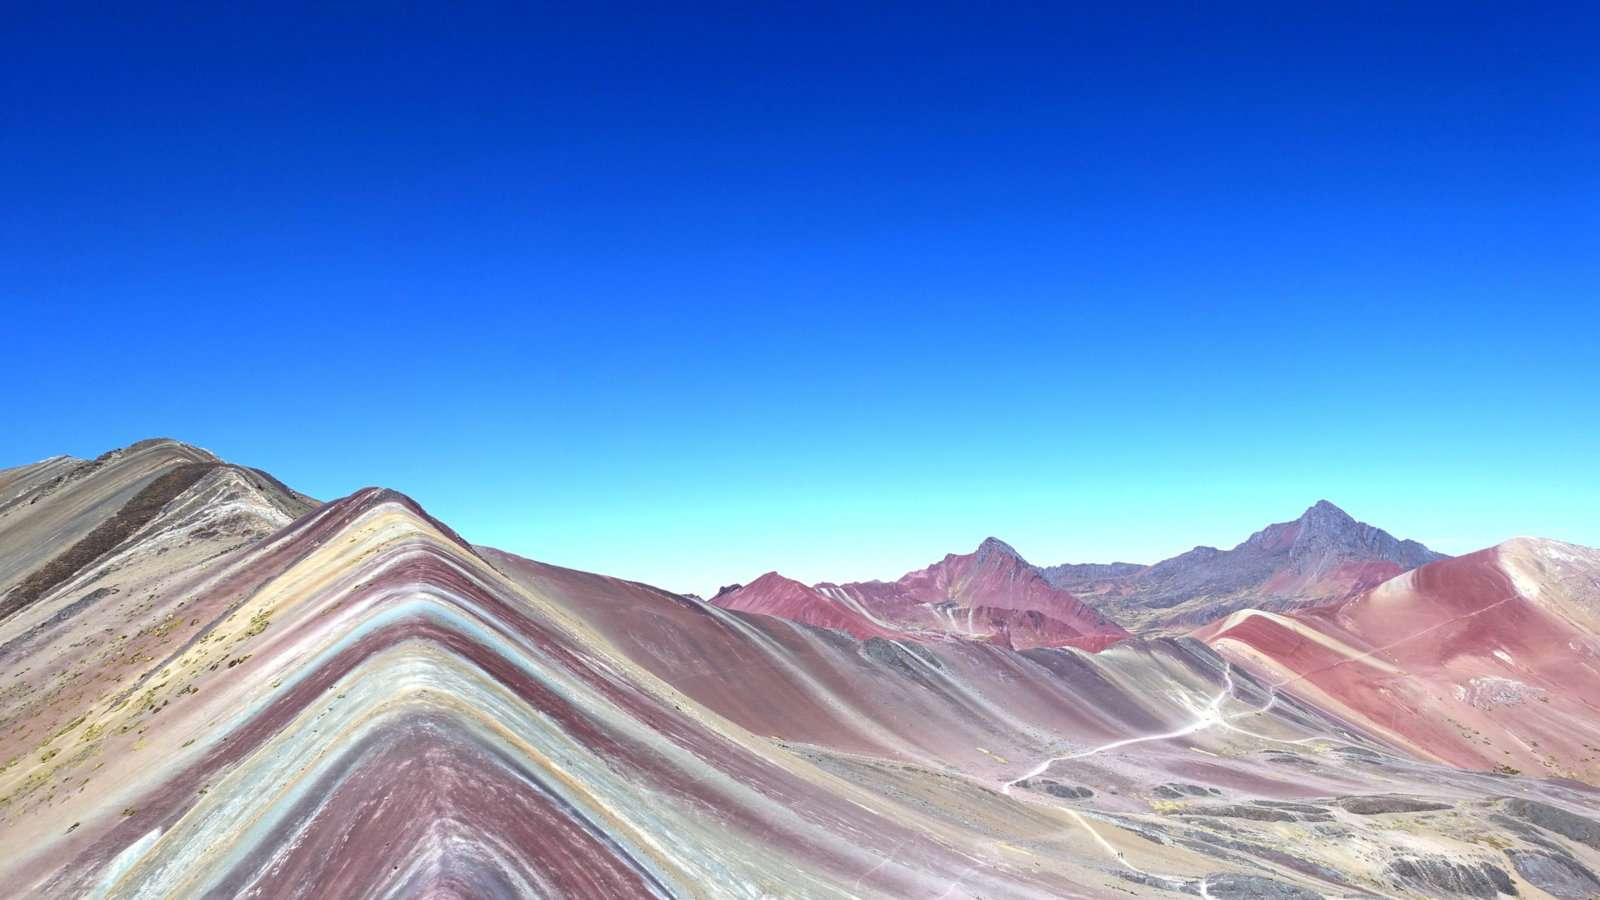 Vinicunca is a mountain made of rainbows in Peru that's a must-see